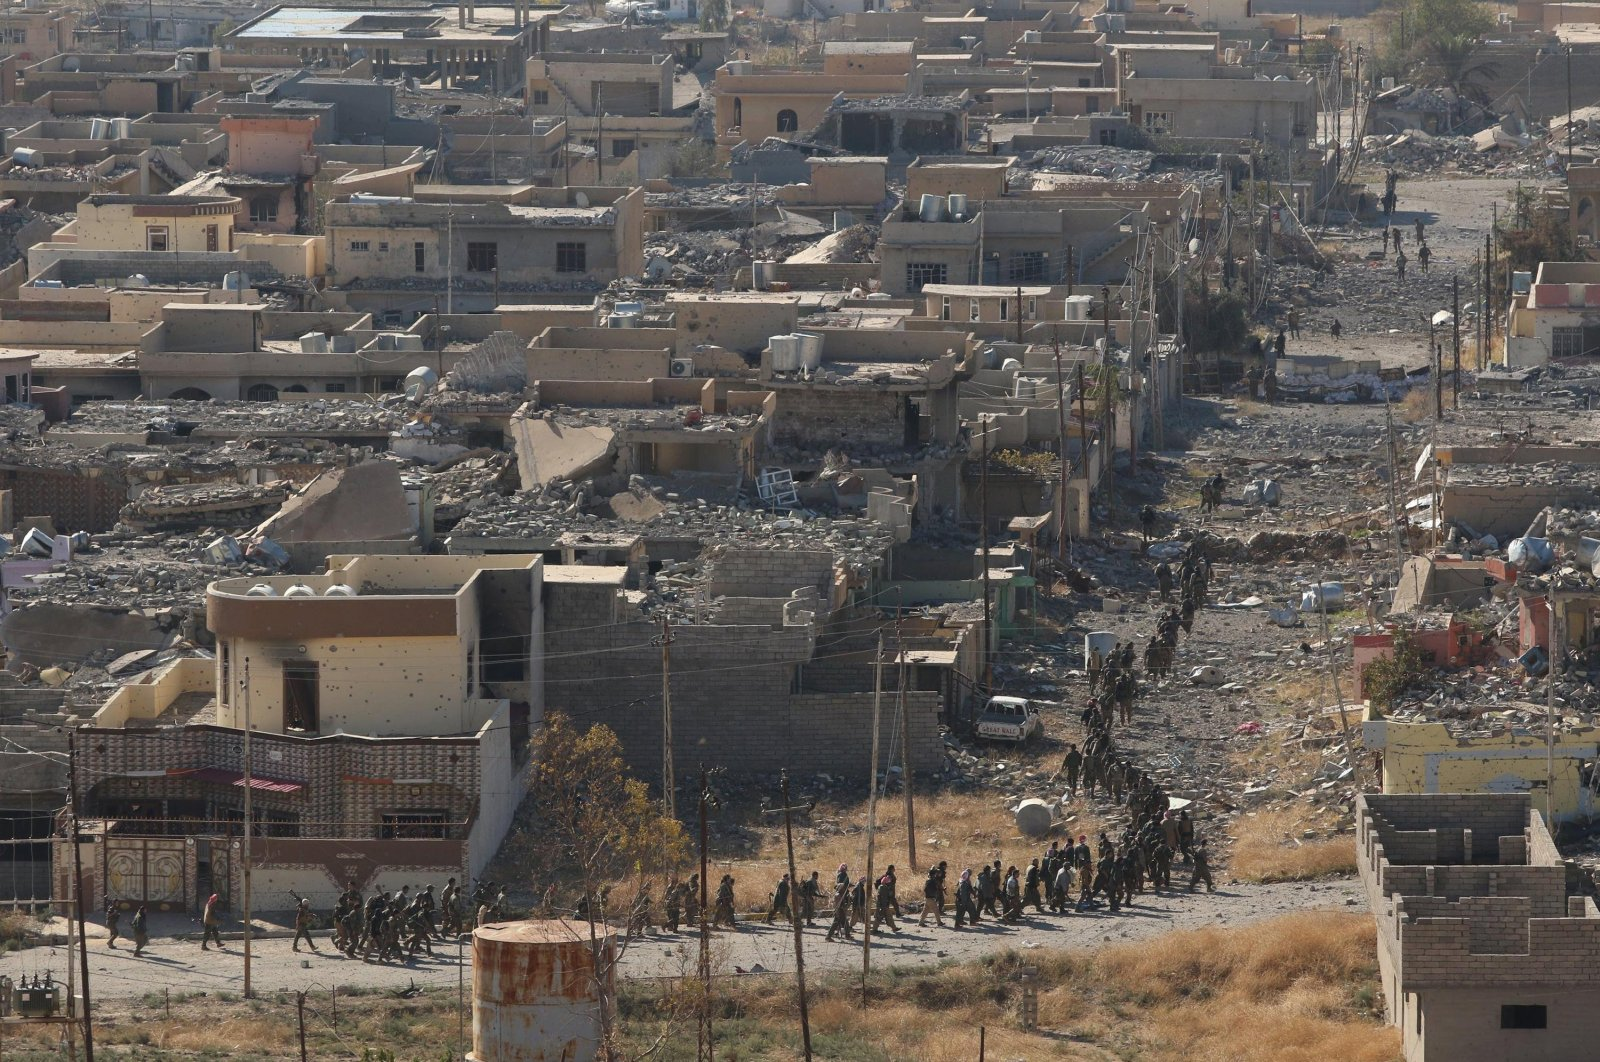 A view from the town of Sinjar during the clashes between Kurdish peshmerga forces and the Deash terror group militants, Iraq, Nov. 13, 2015. (REUTERS Photo)